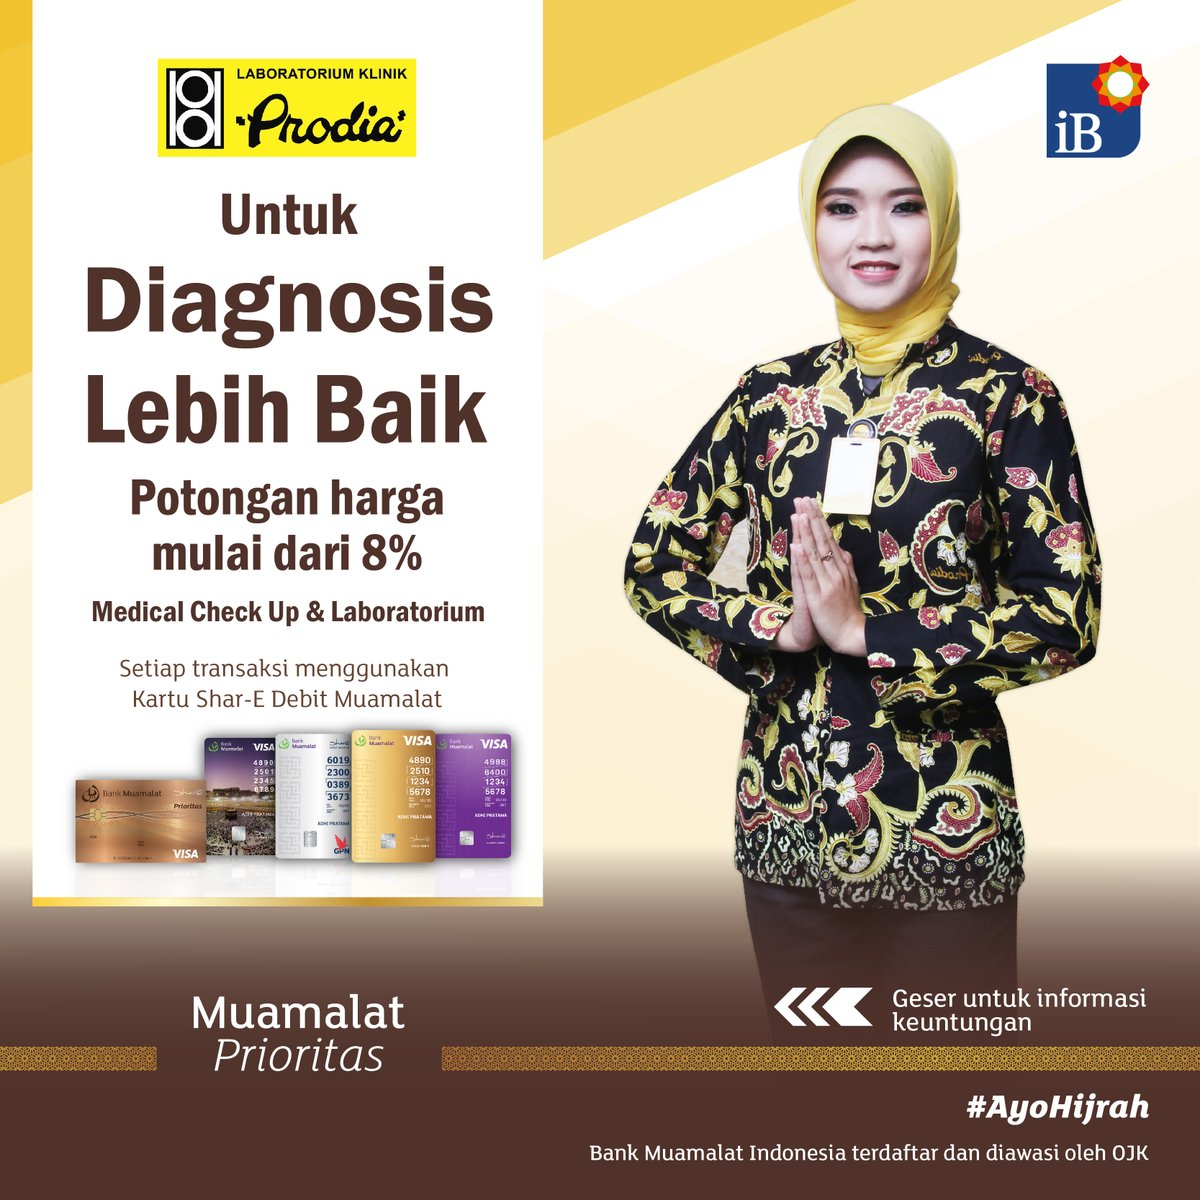 Bank Muamalat - Promo Diskon Mulai 8% Medical Check Up & Laboratorium di Prodia